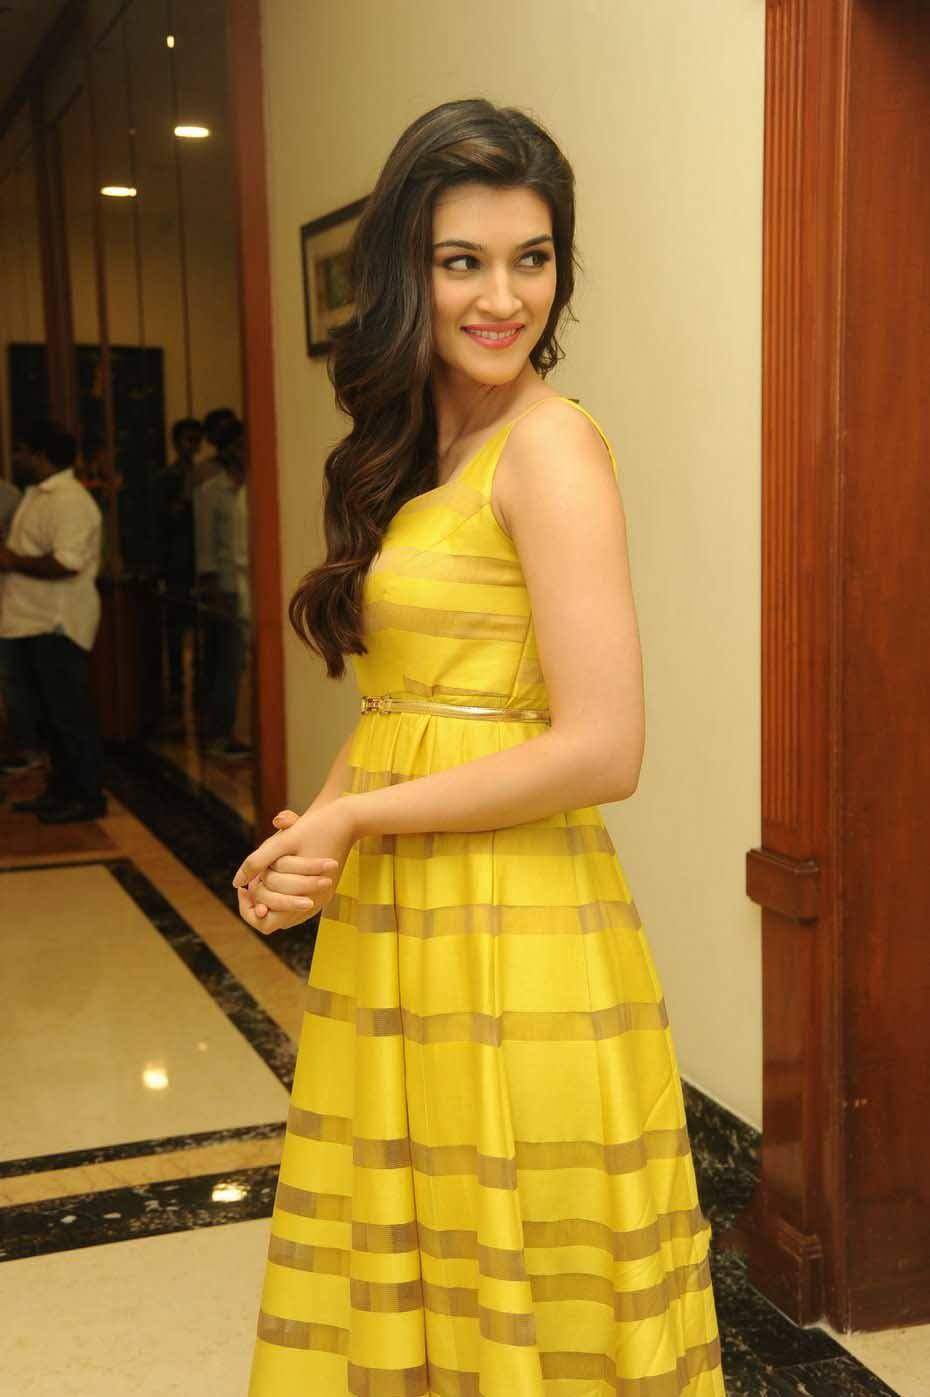 181 Kriti Sanon Pics - 30 Cute Kriti Sanon Outfits and Looks